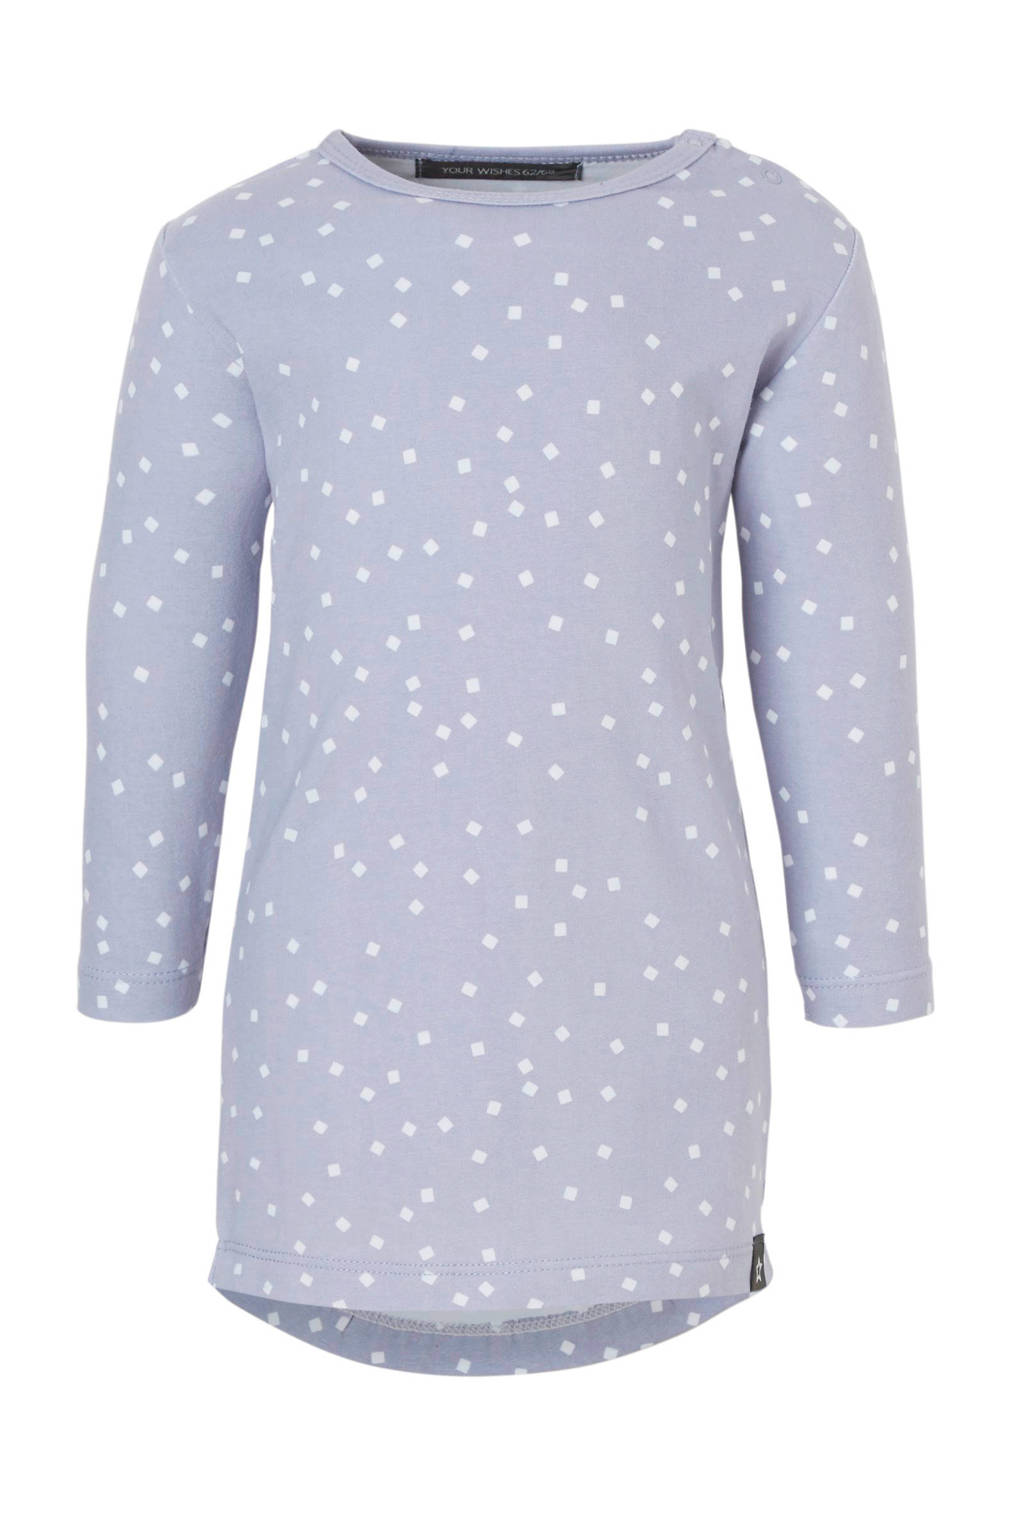 Your Wishes jurk met all over print lila, Lila/wit